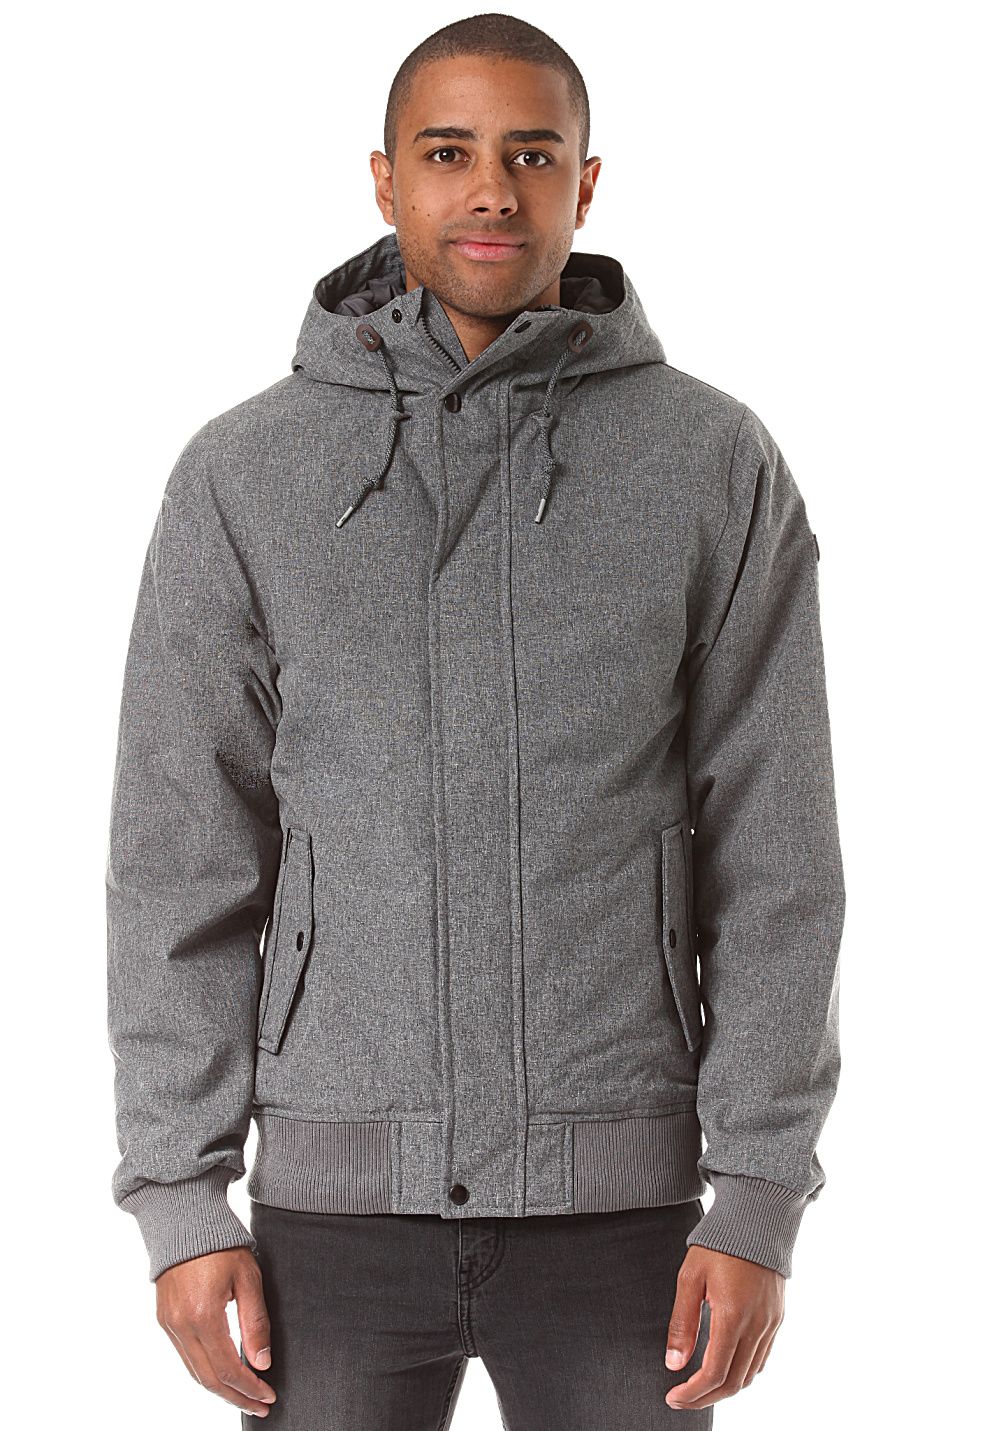 the best attitude 5acd9 fb25c BILLABONG All Day 10k - Giacca tecnica per Uomo - Grigio